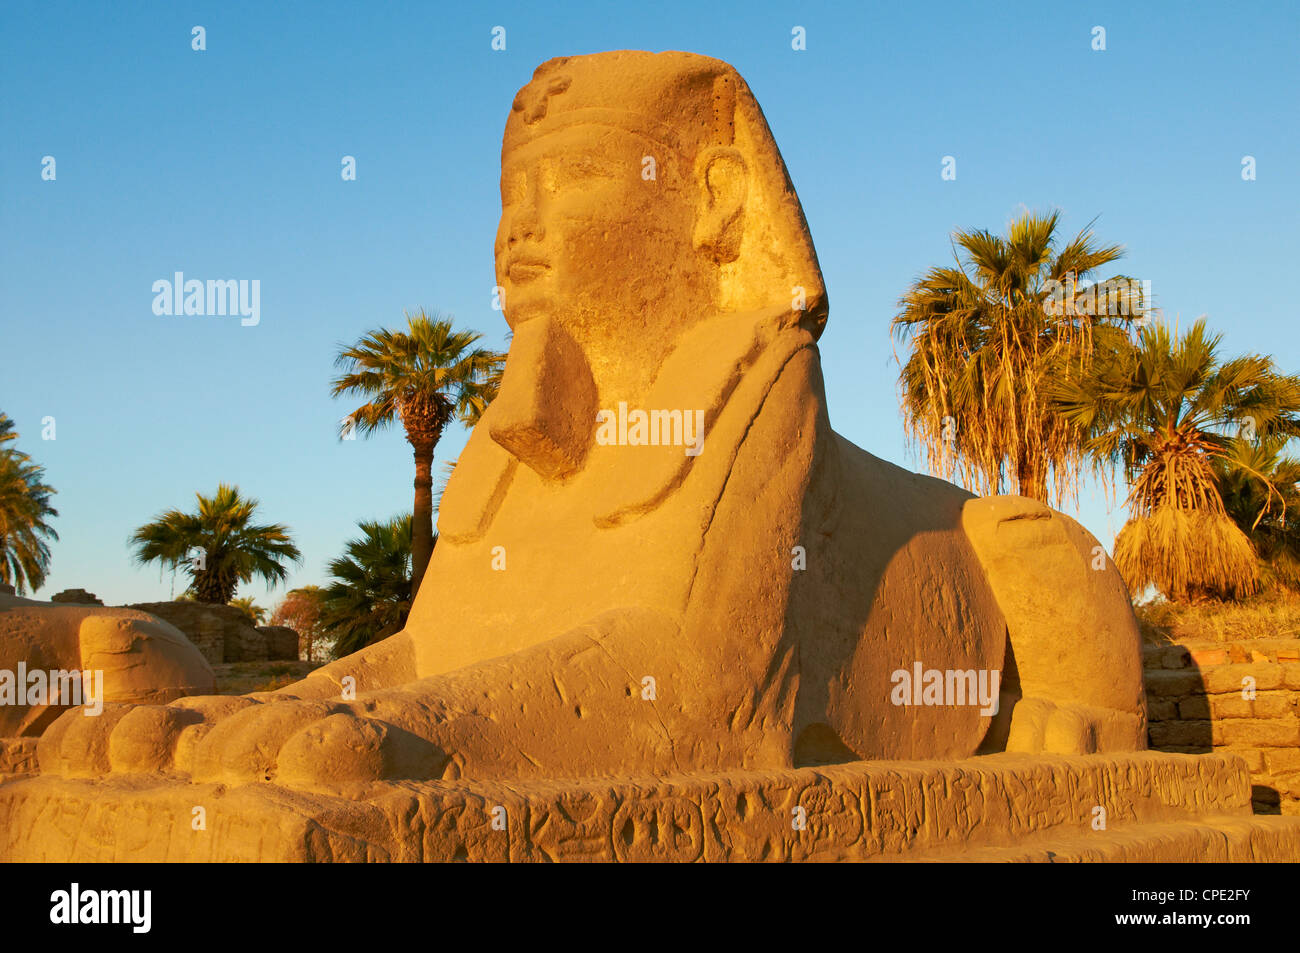 Sphinx path, Temple of Luxor, Thebes, UNESCO World Heritage Site, Egypt, North Africa, Africa - Stock Image